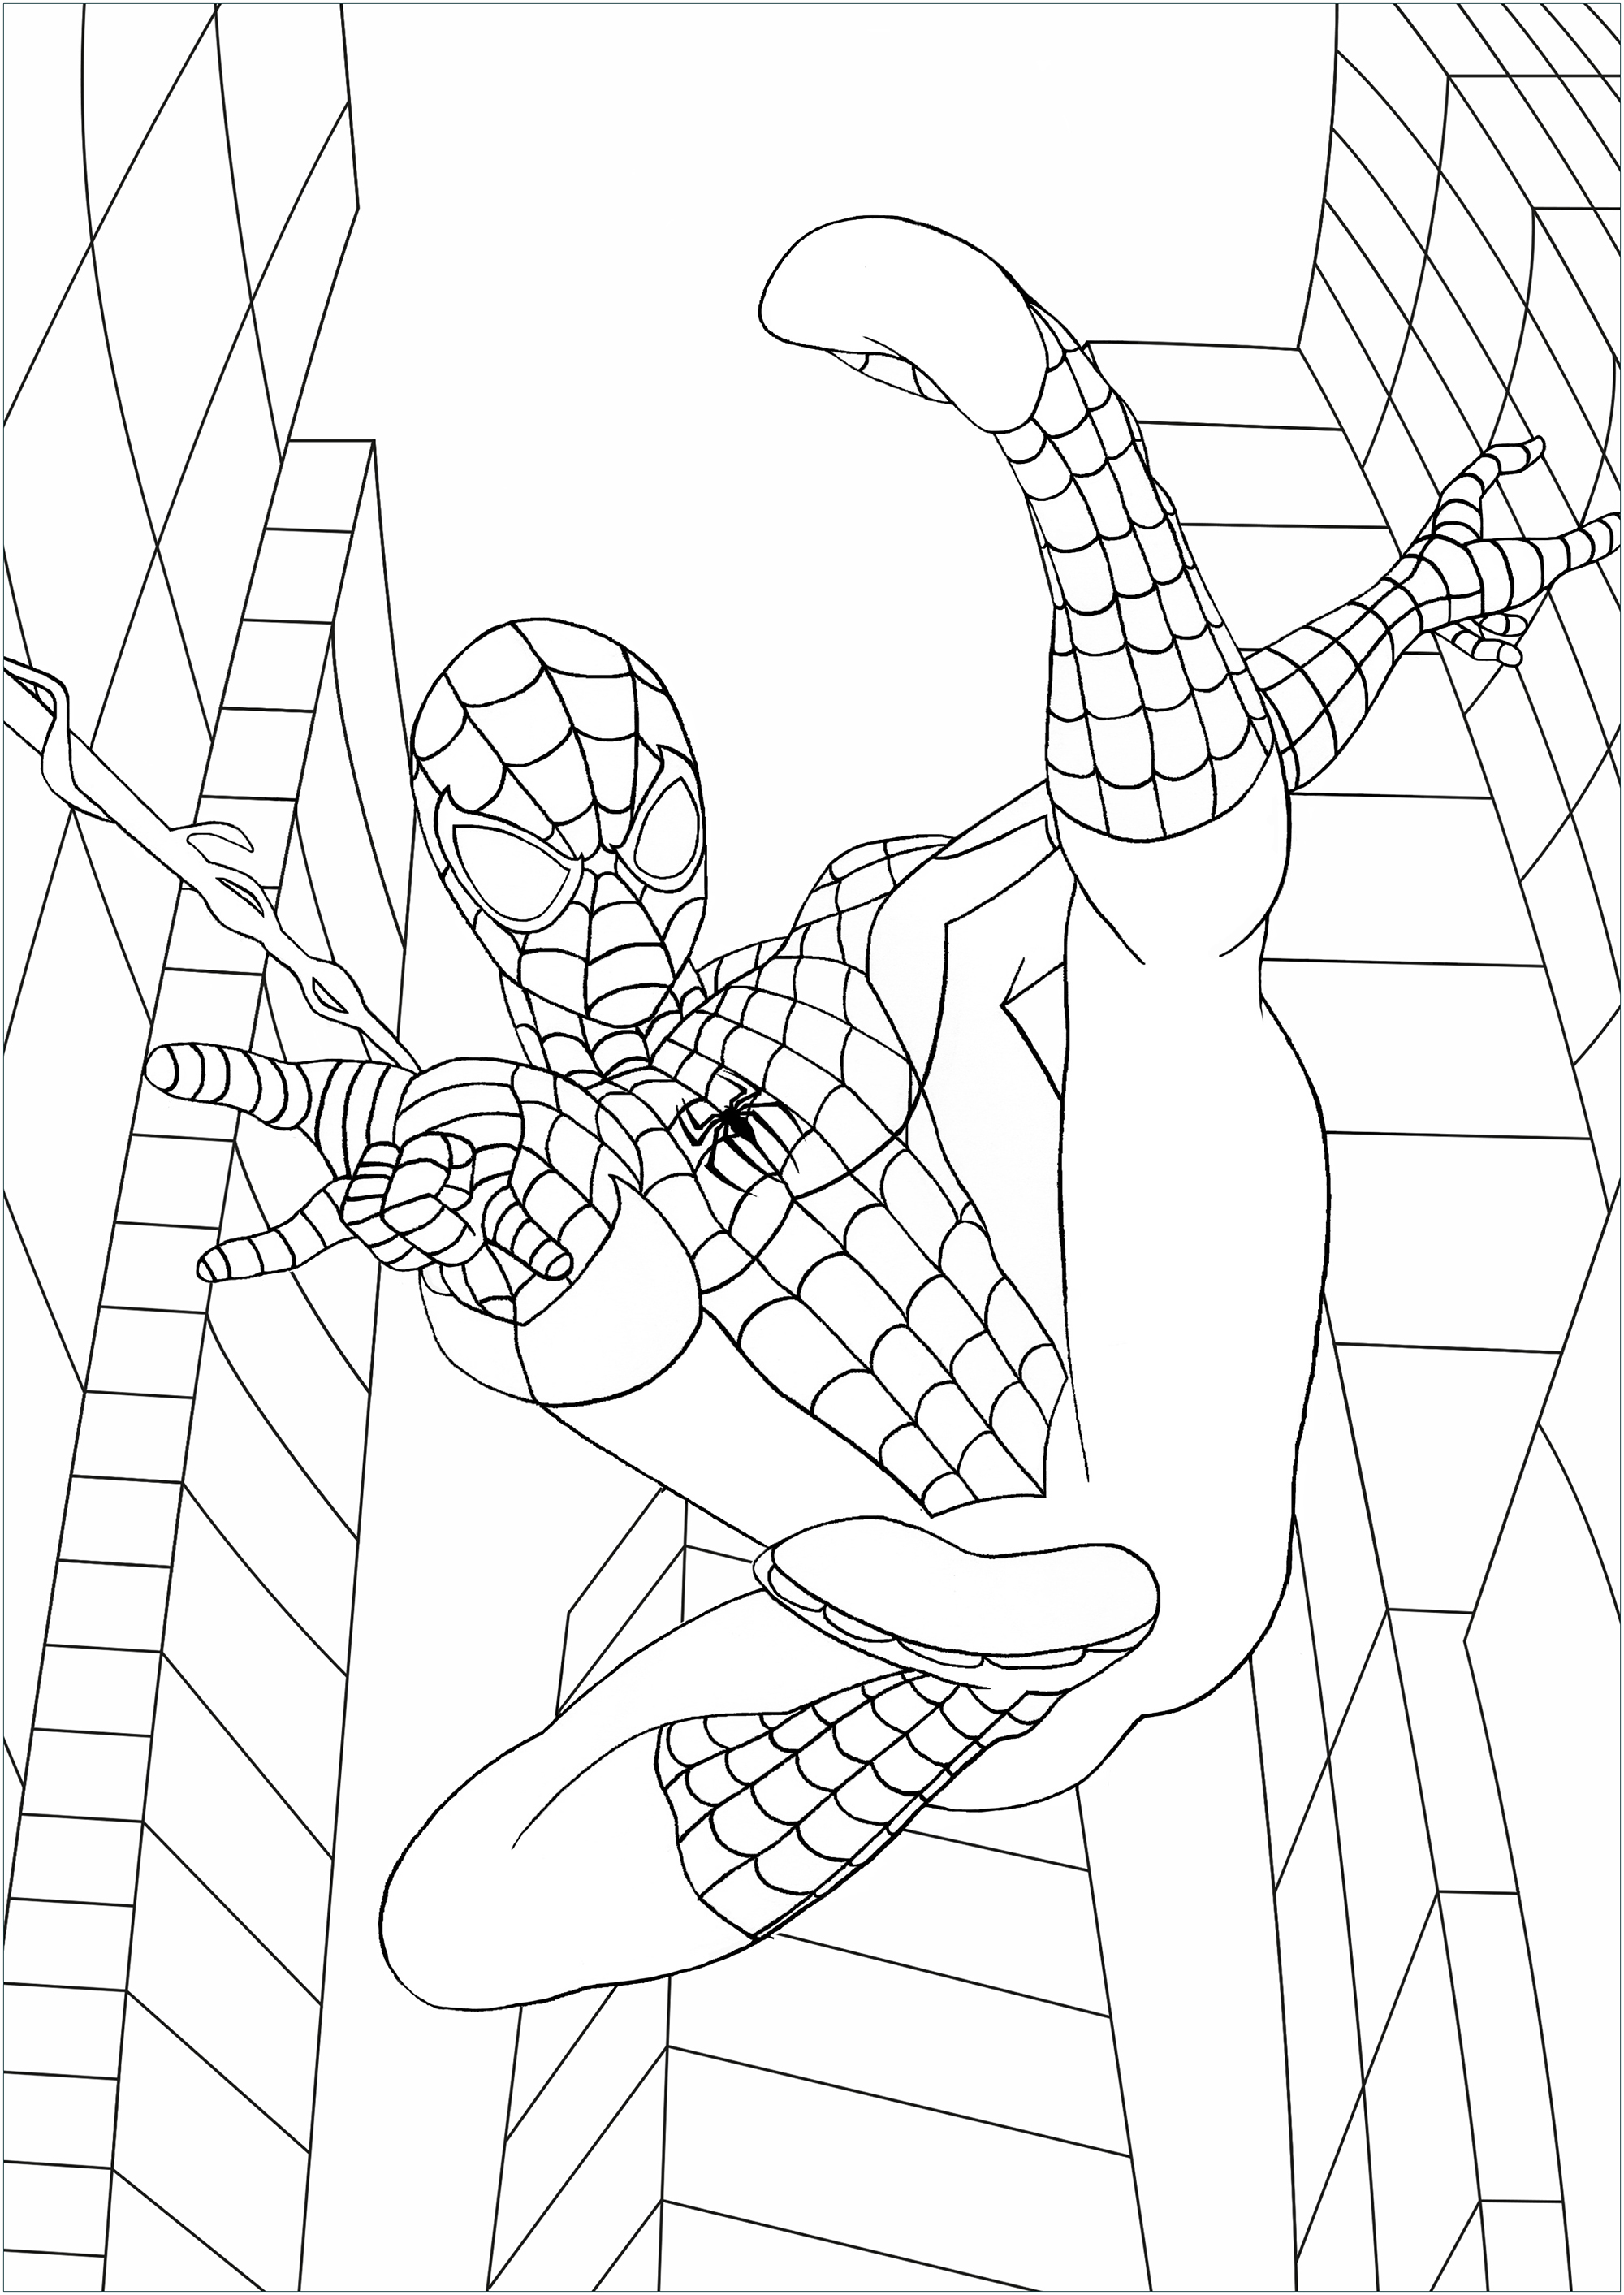 spiderman picture to color spiderman to print for free spiderman kids coloring pages color to spiderman picture